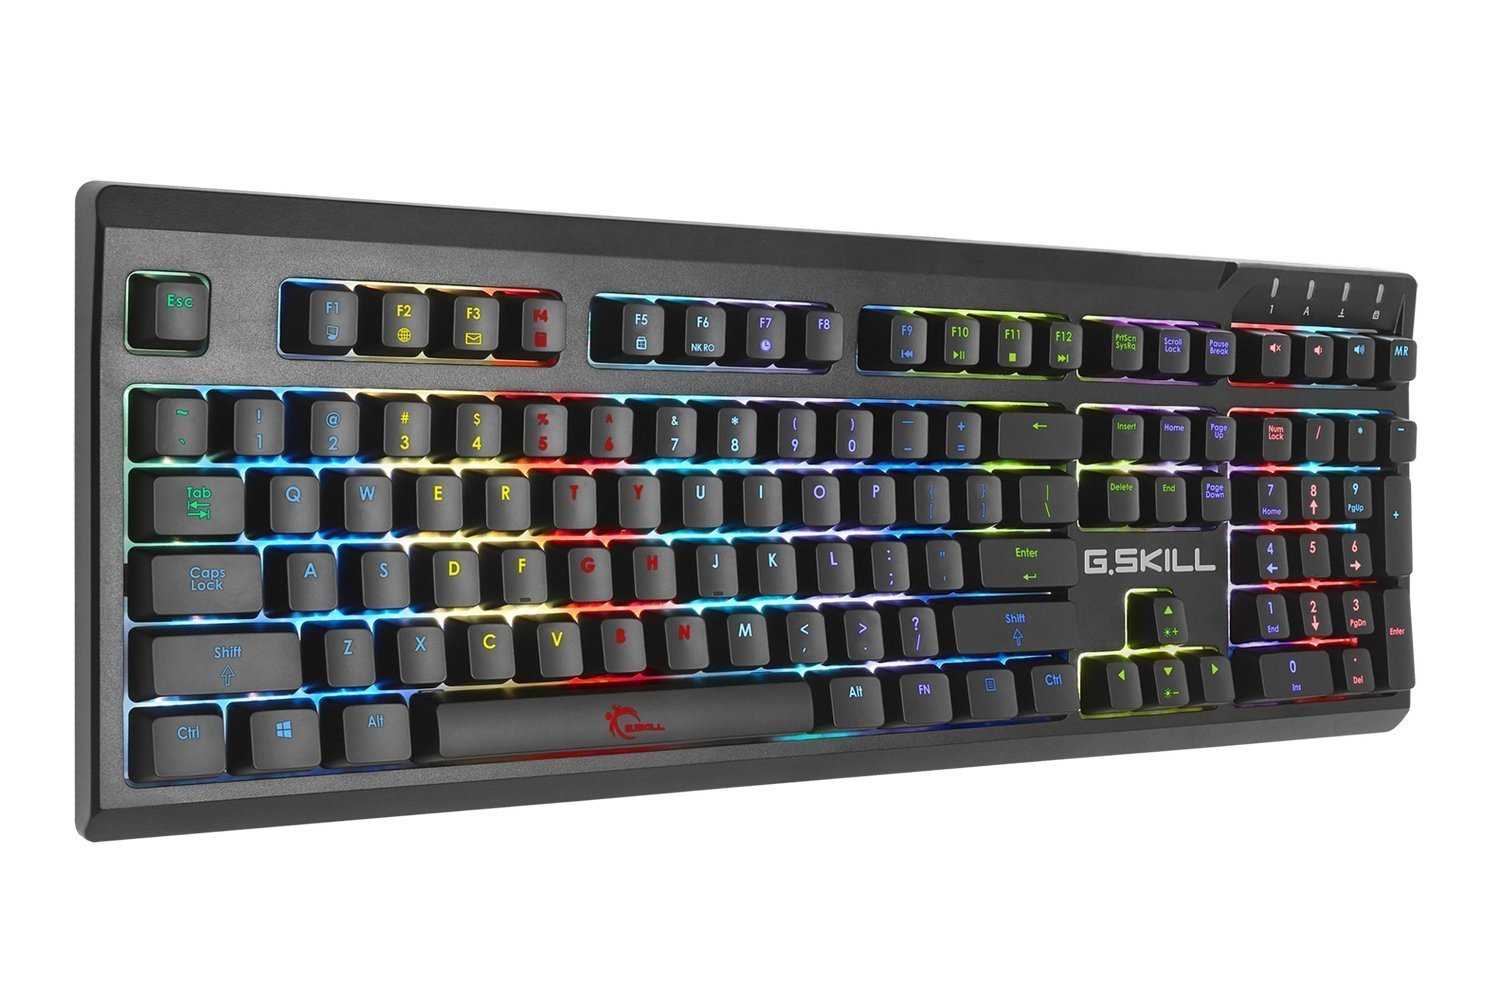 G.SKILL RIPJAWS KM570 RGB Mechanical Gaming Keyboard, Cherry MX Blue G SKILL Canada